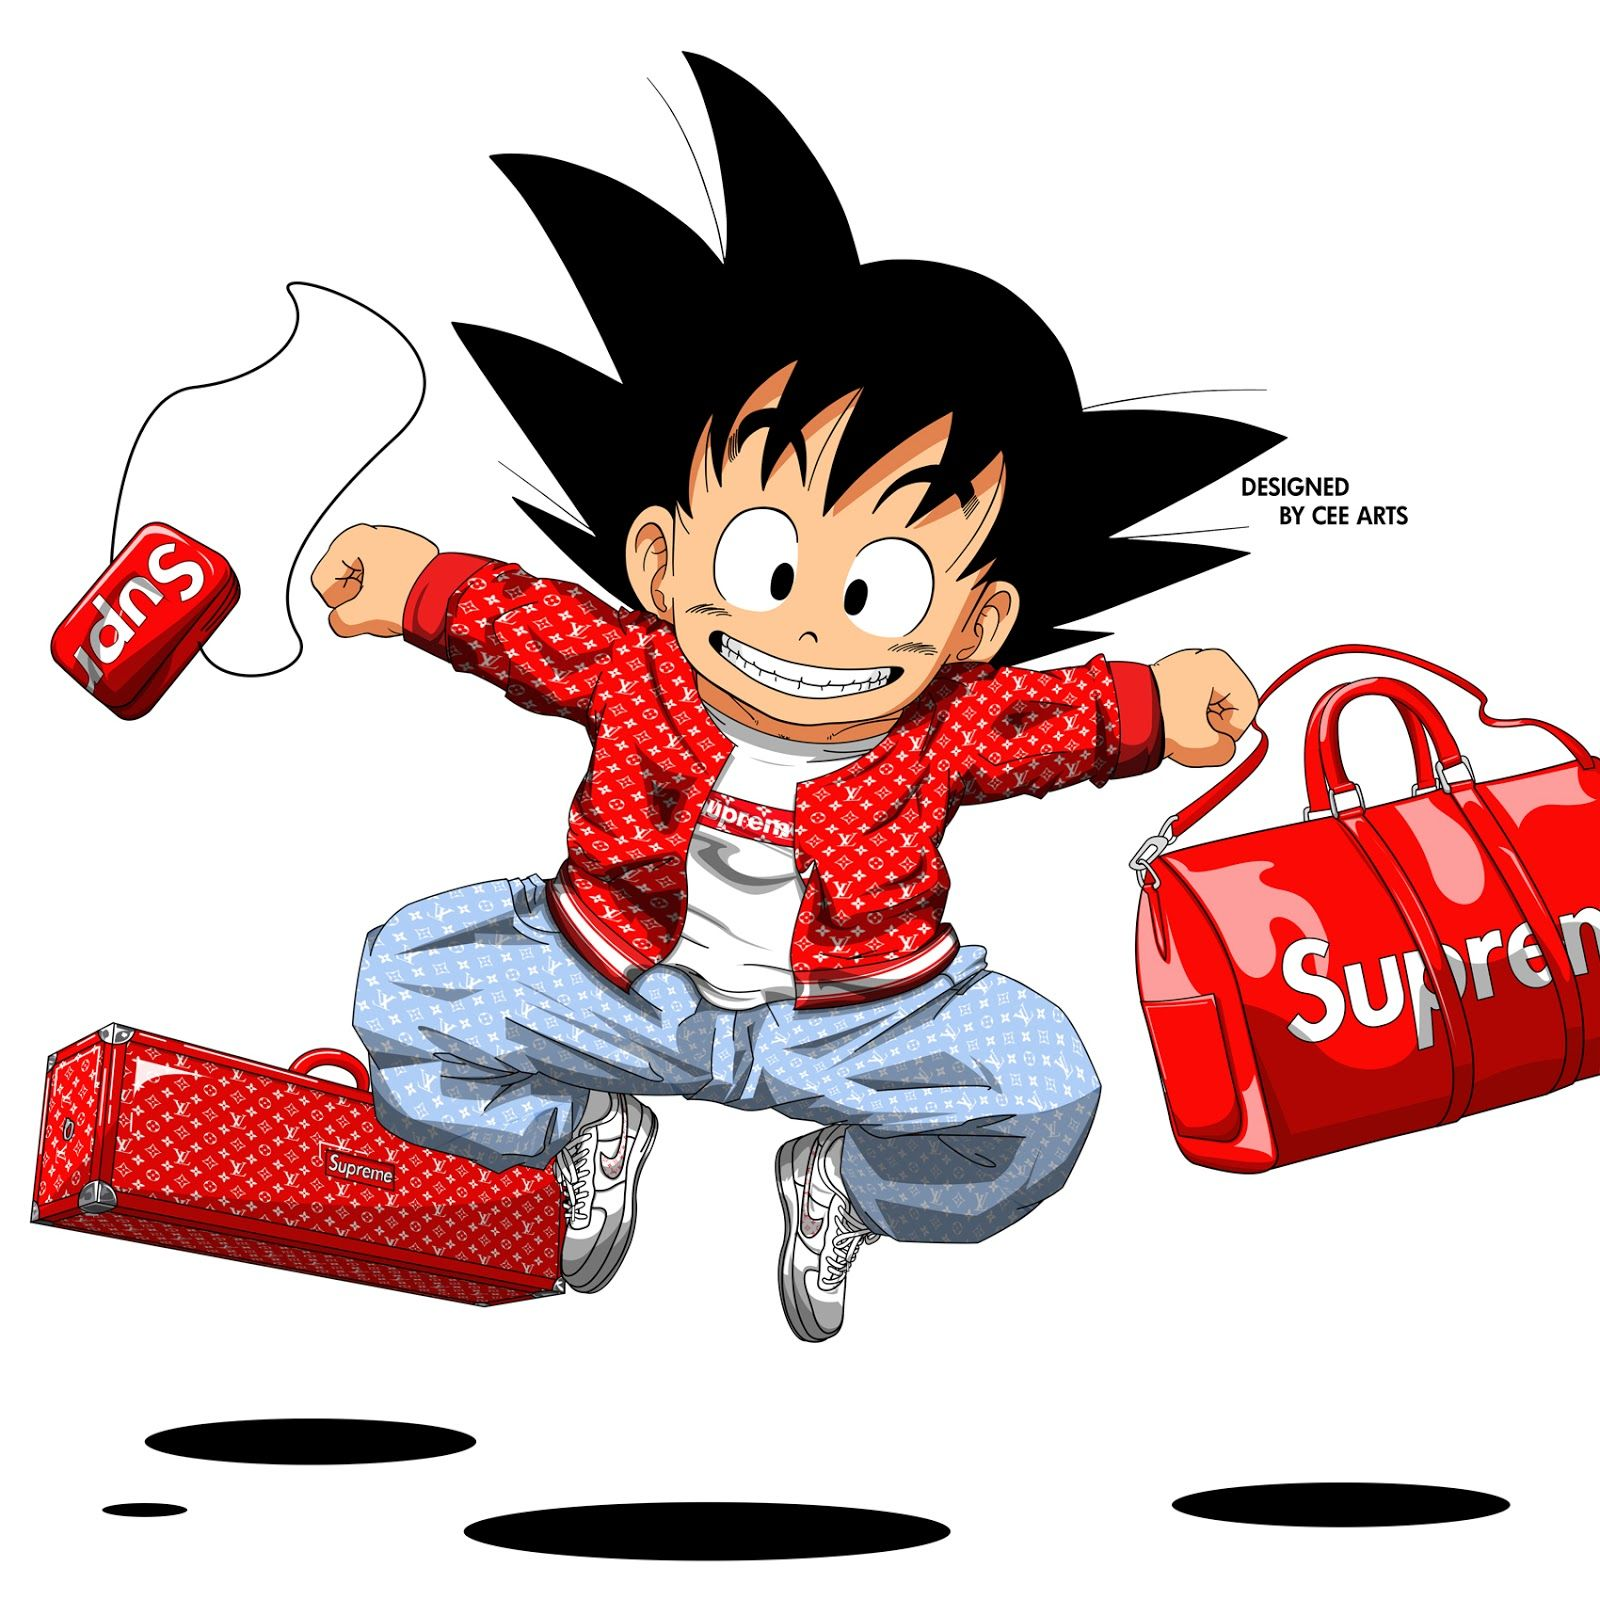 Hypebeast Cartoon Wallpapers   Top Hypebeast Cartoon 1600x1600